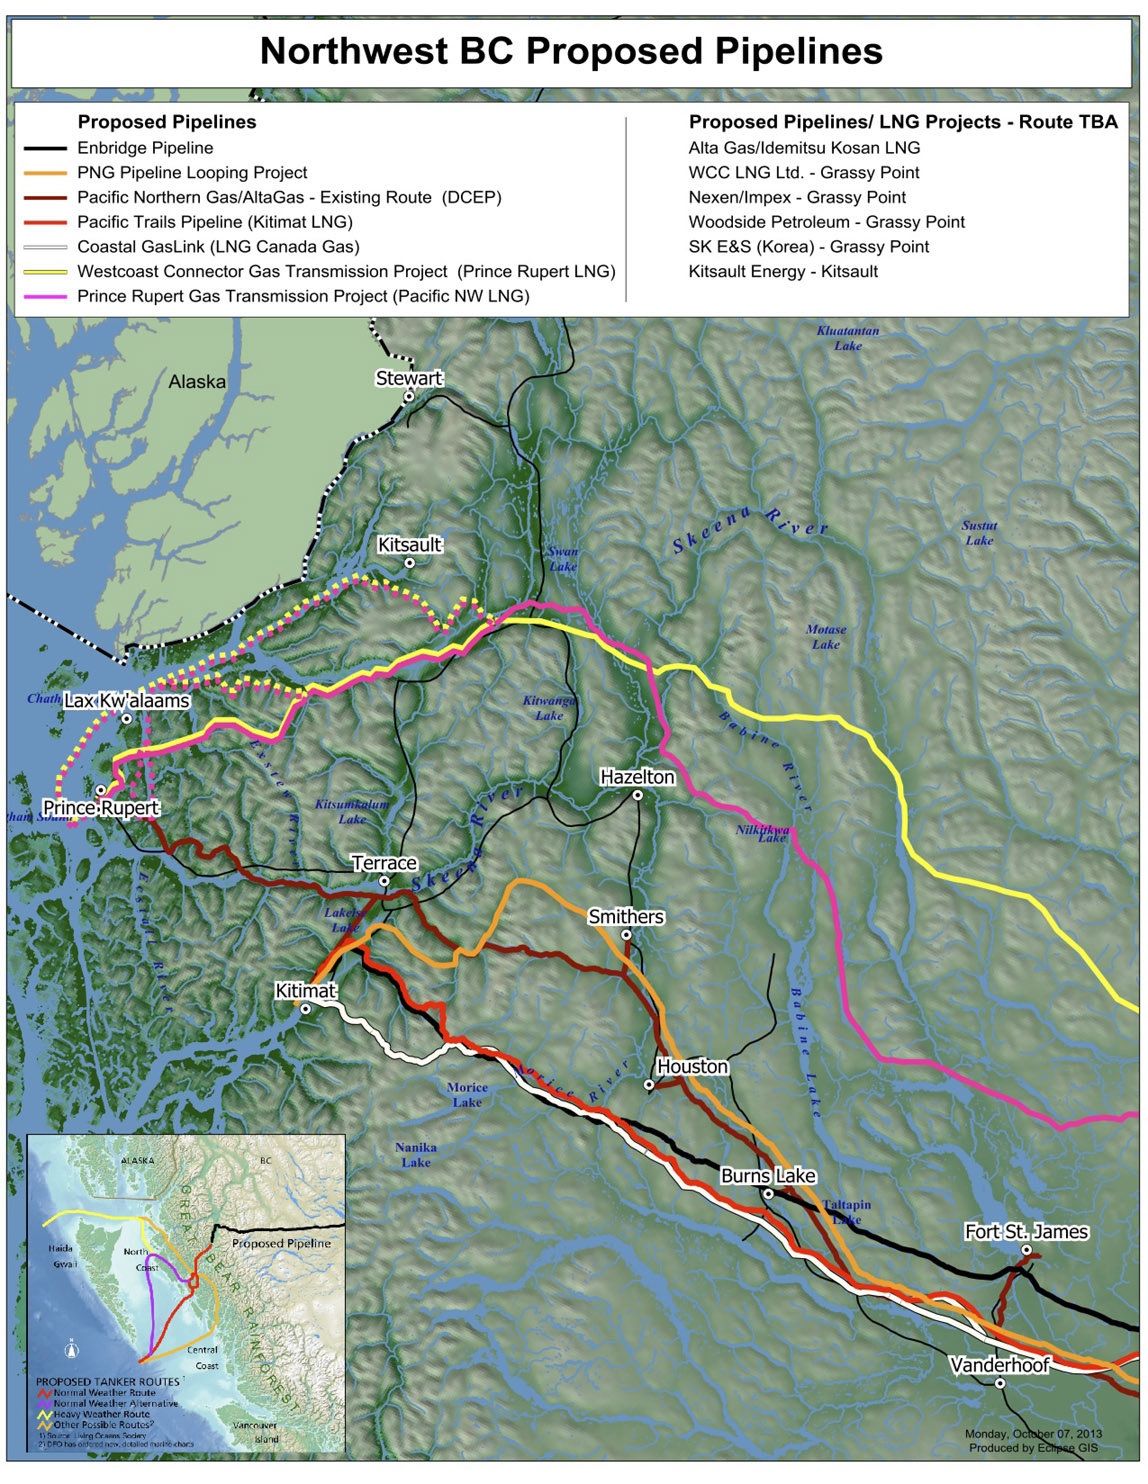 NWBC-Proposed-LNG-Pipe-Overview-October-2013